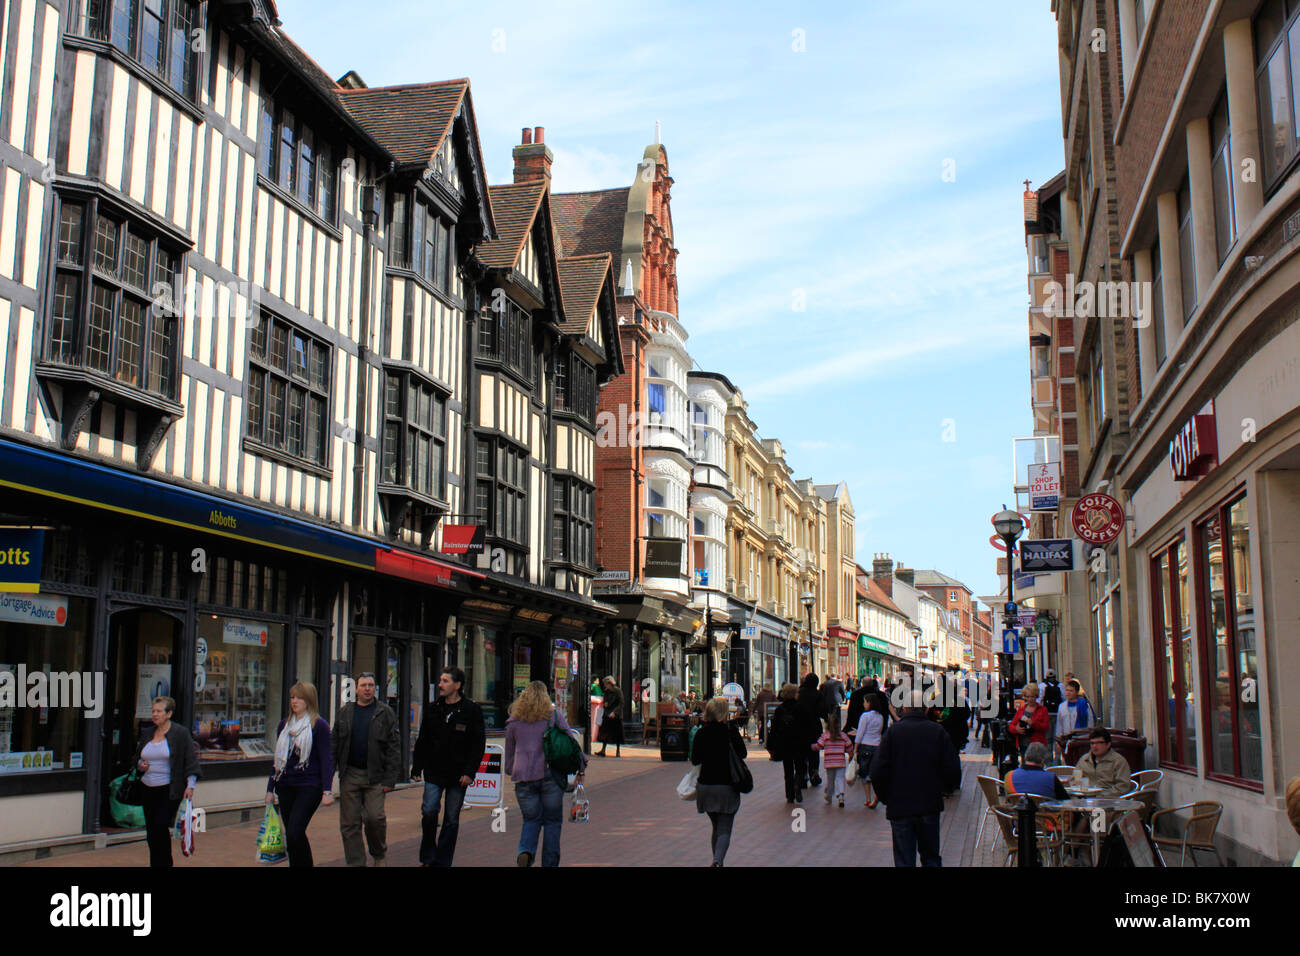 Listed Buildings In Ipswich